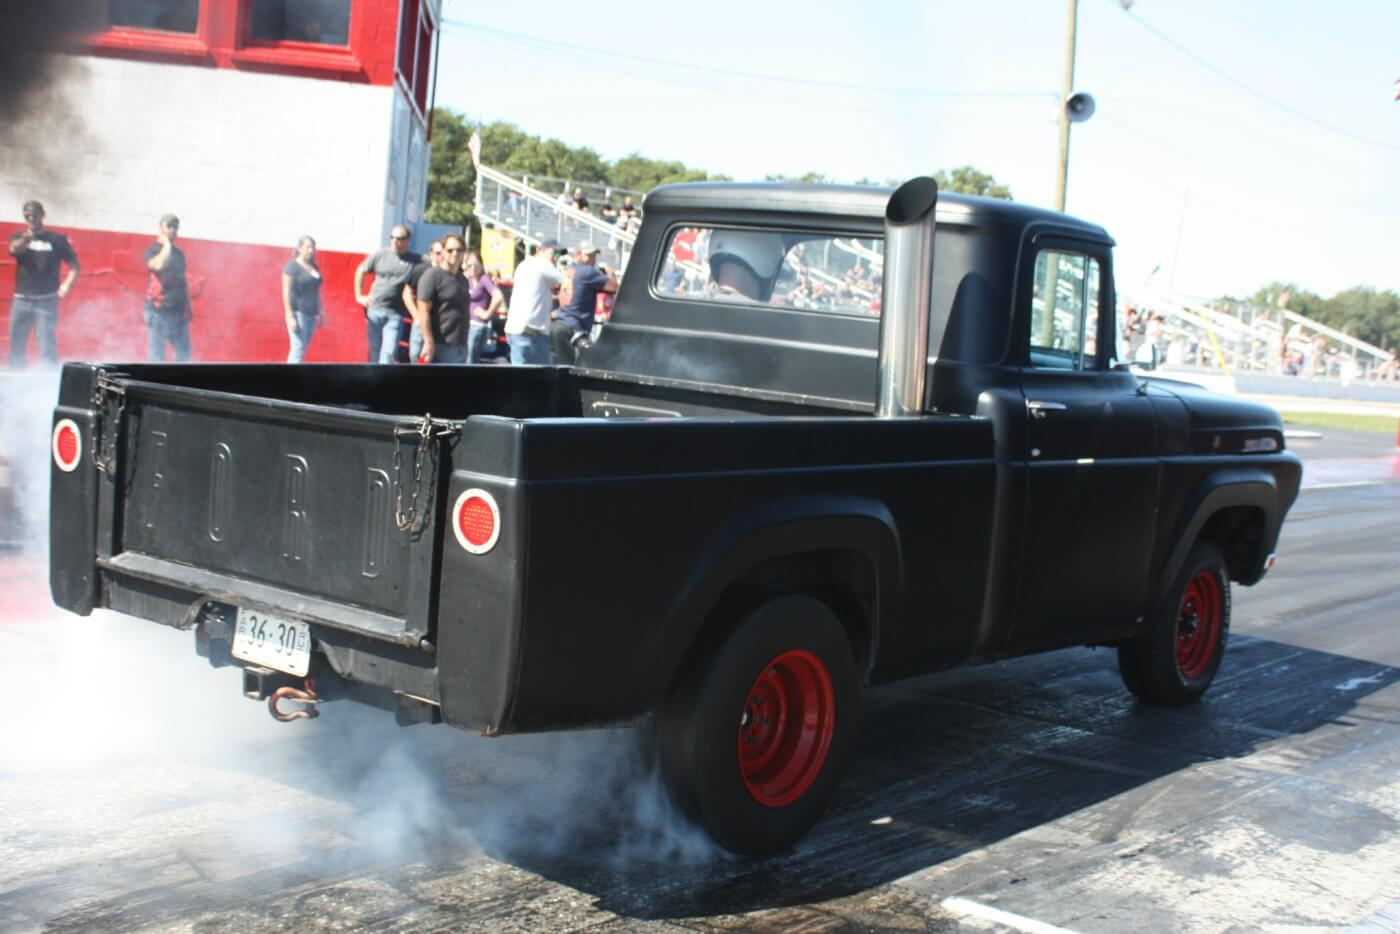 This old Ford pickup showed up to the event with a 12V Cummins powerplant under the hood, ready to turn some heads in the stands while breaking hearts on the track. While it may not look like much, the truck could hold its own on a 1/4-mile dragstrip.